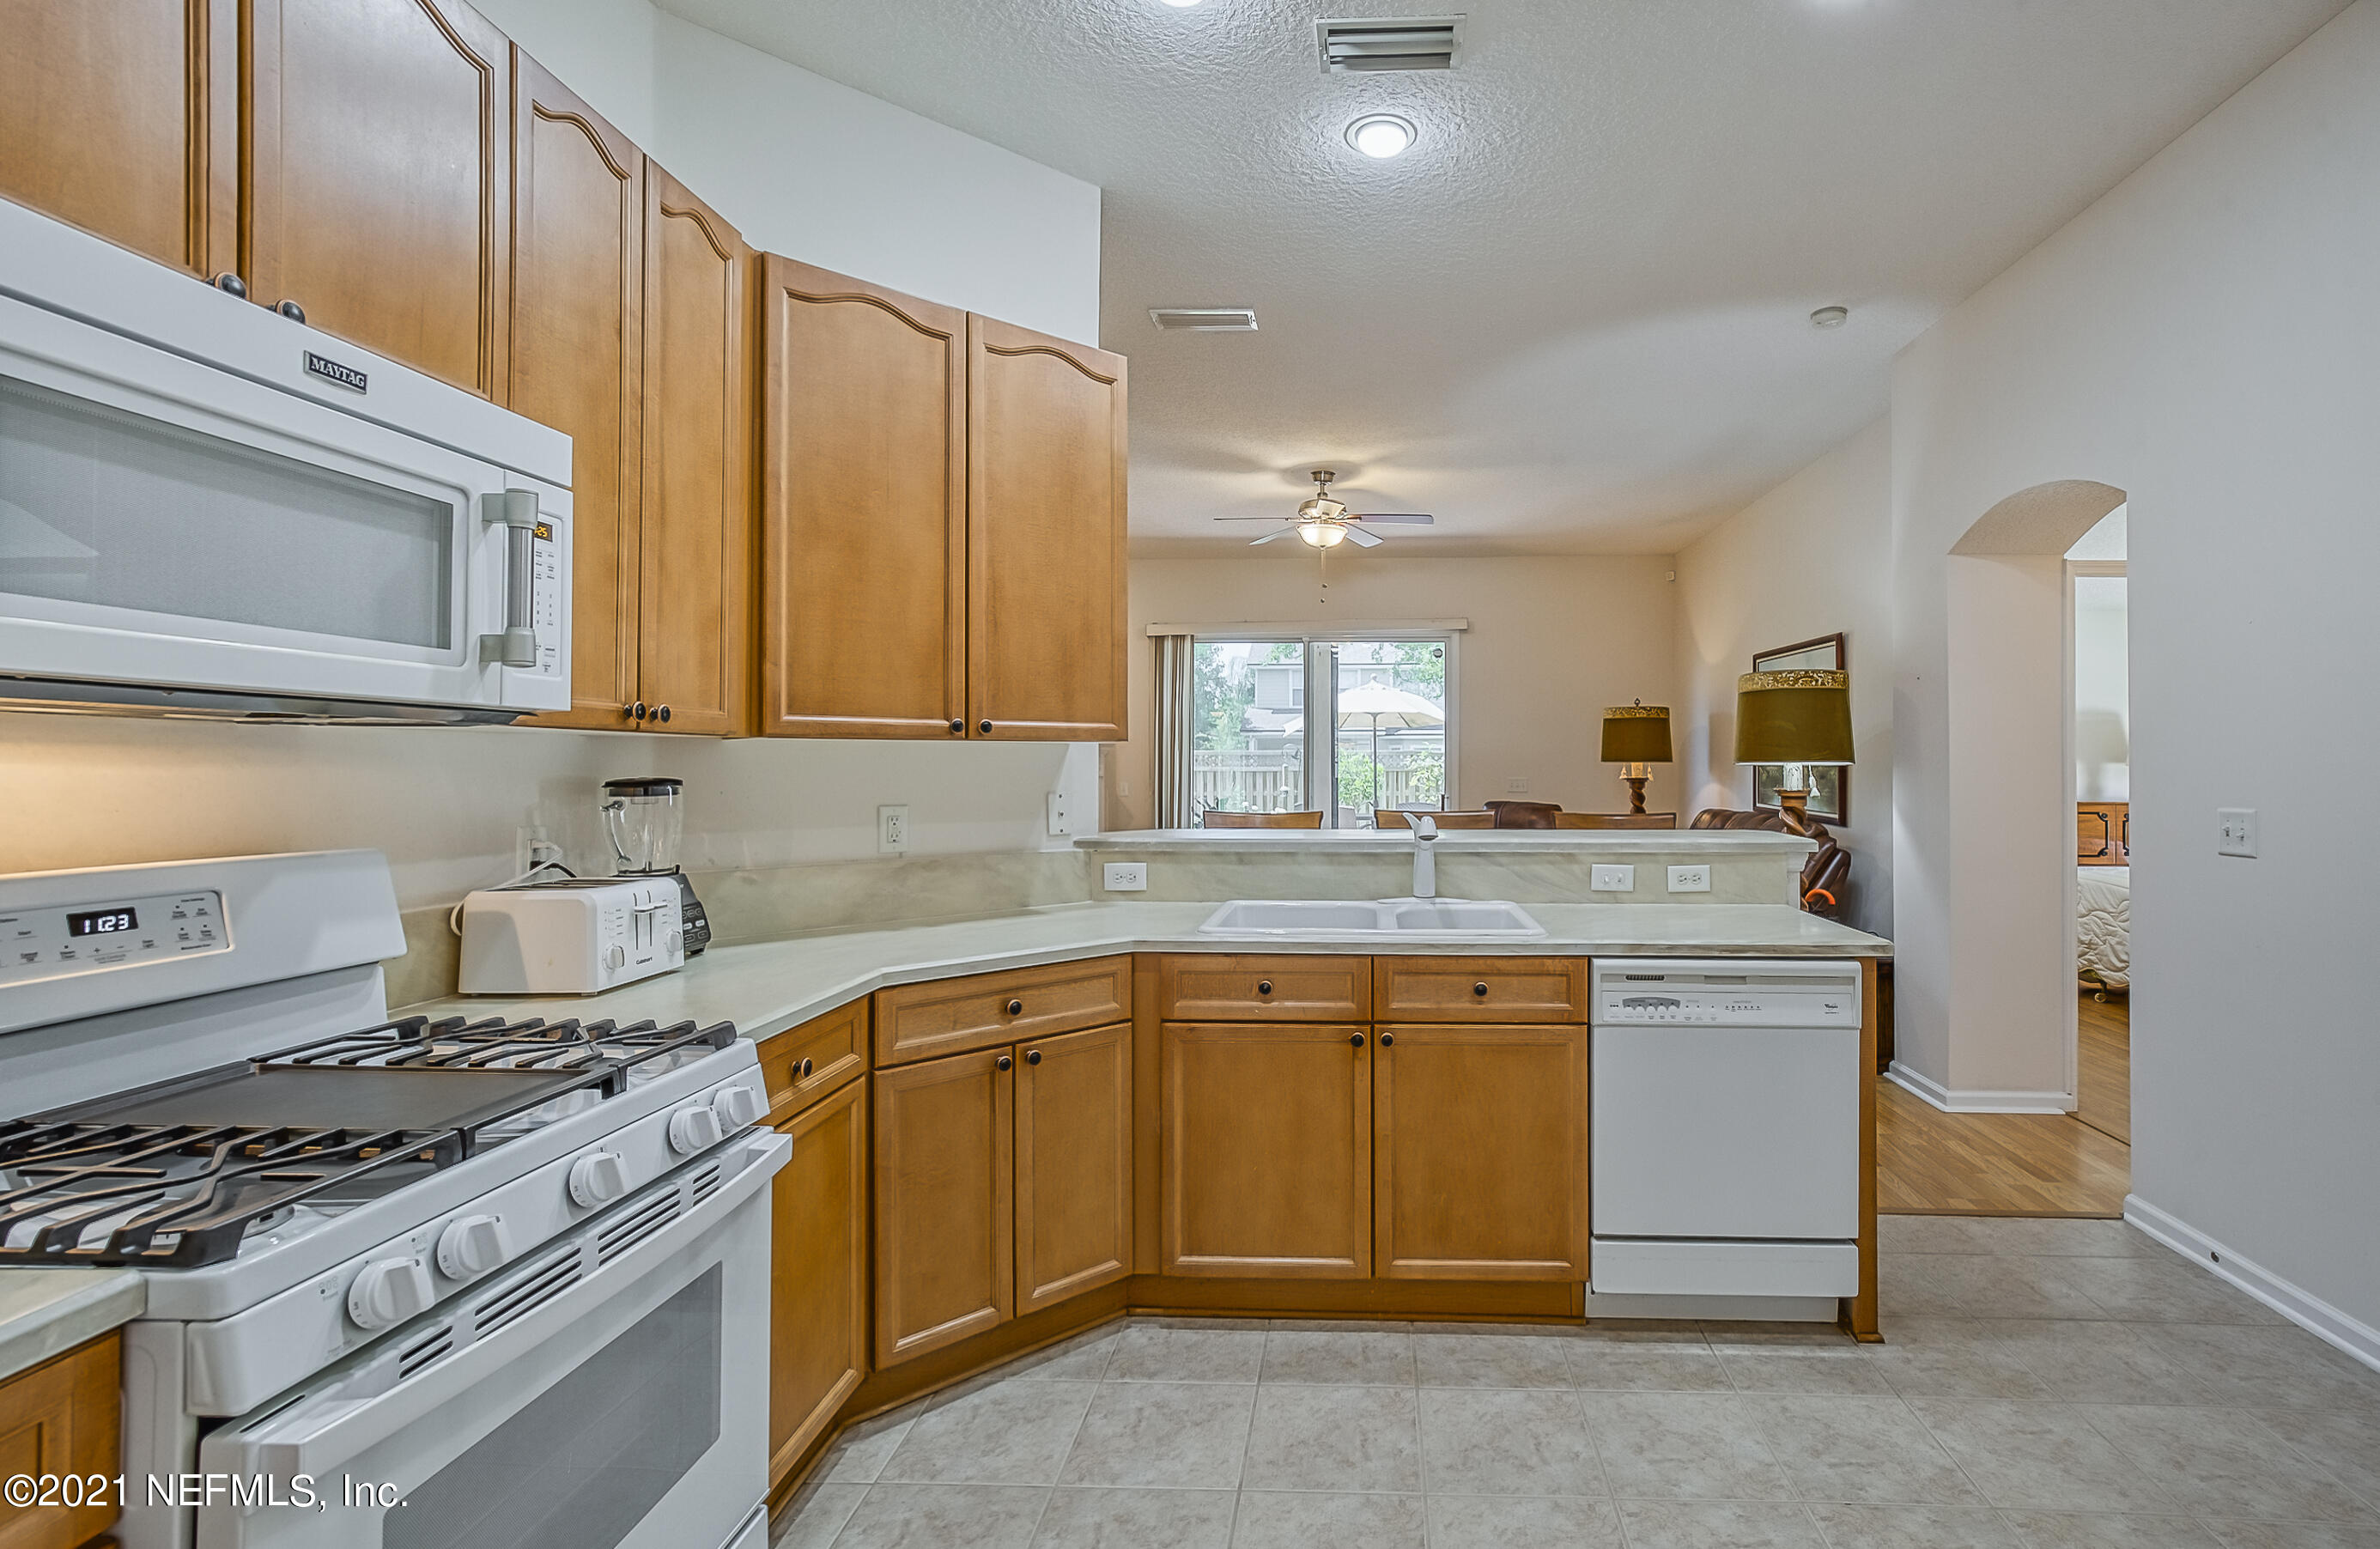 1913 RIVER LAGOON, ST AUGUSTINE, FLORIDA 32092, 4 Bedrooms Bedrooms, ,2 BathroomsBathrooms,Residential,For sale,RIVER LAGOON,1112220